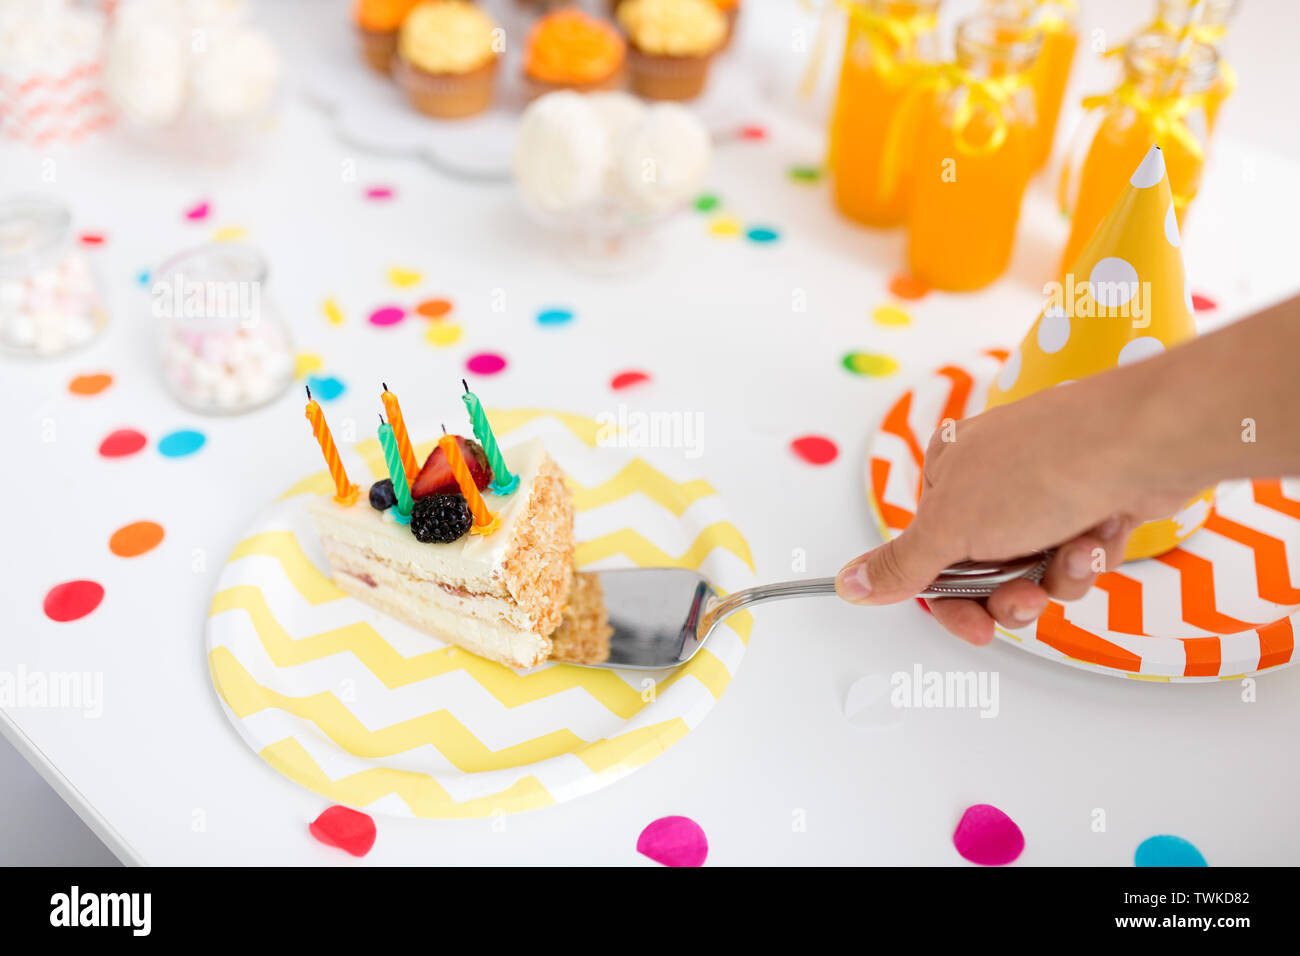 hand putting piece of birthday cake on plate - Stock Image